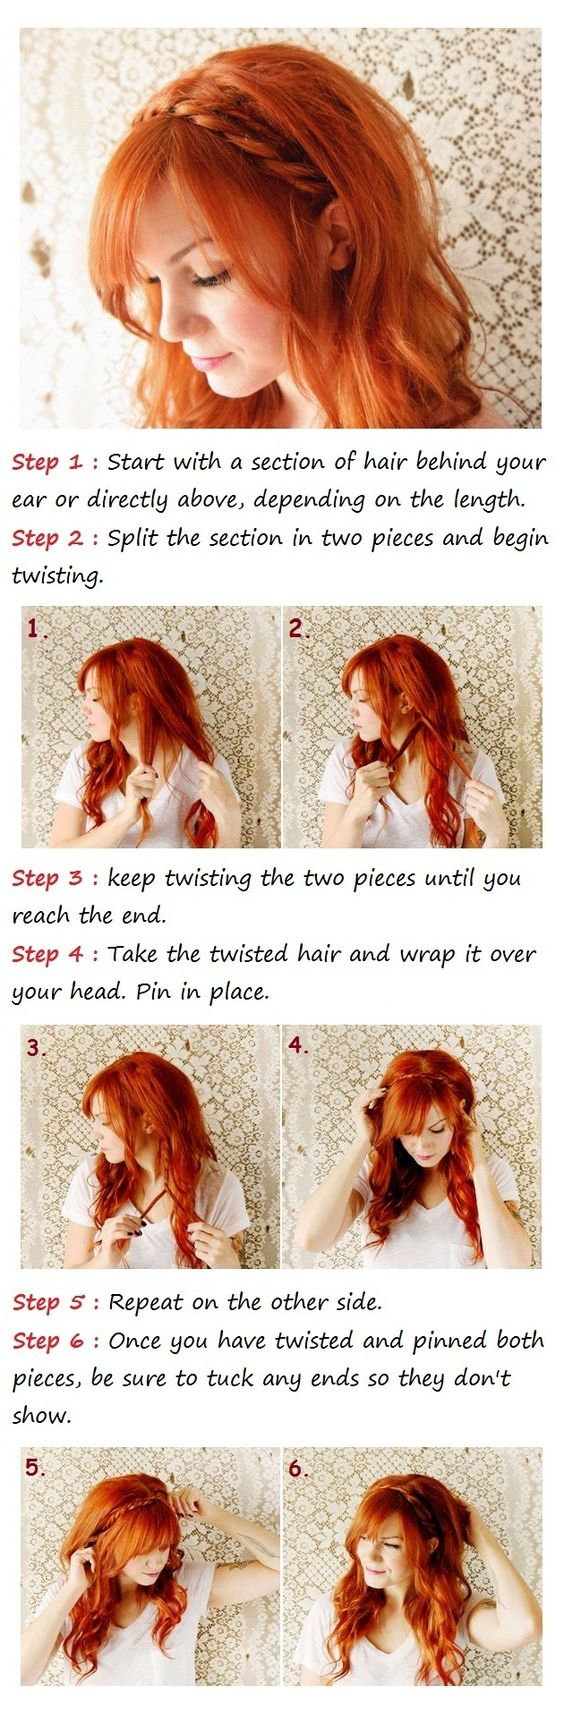 Cute, simple... for those rare days I wear my hair down. and what a gorgeous copper red!.... wish my hair would do this so I could have long, swoopy bangs.